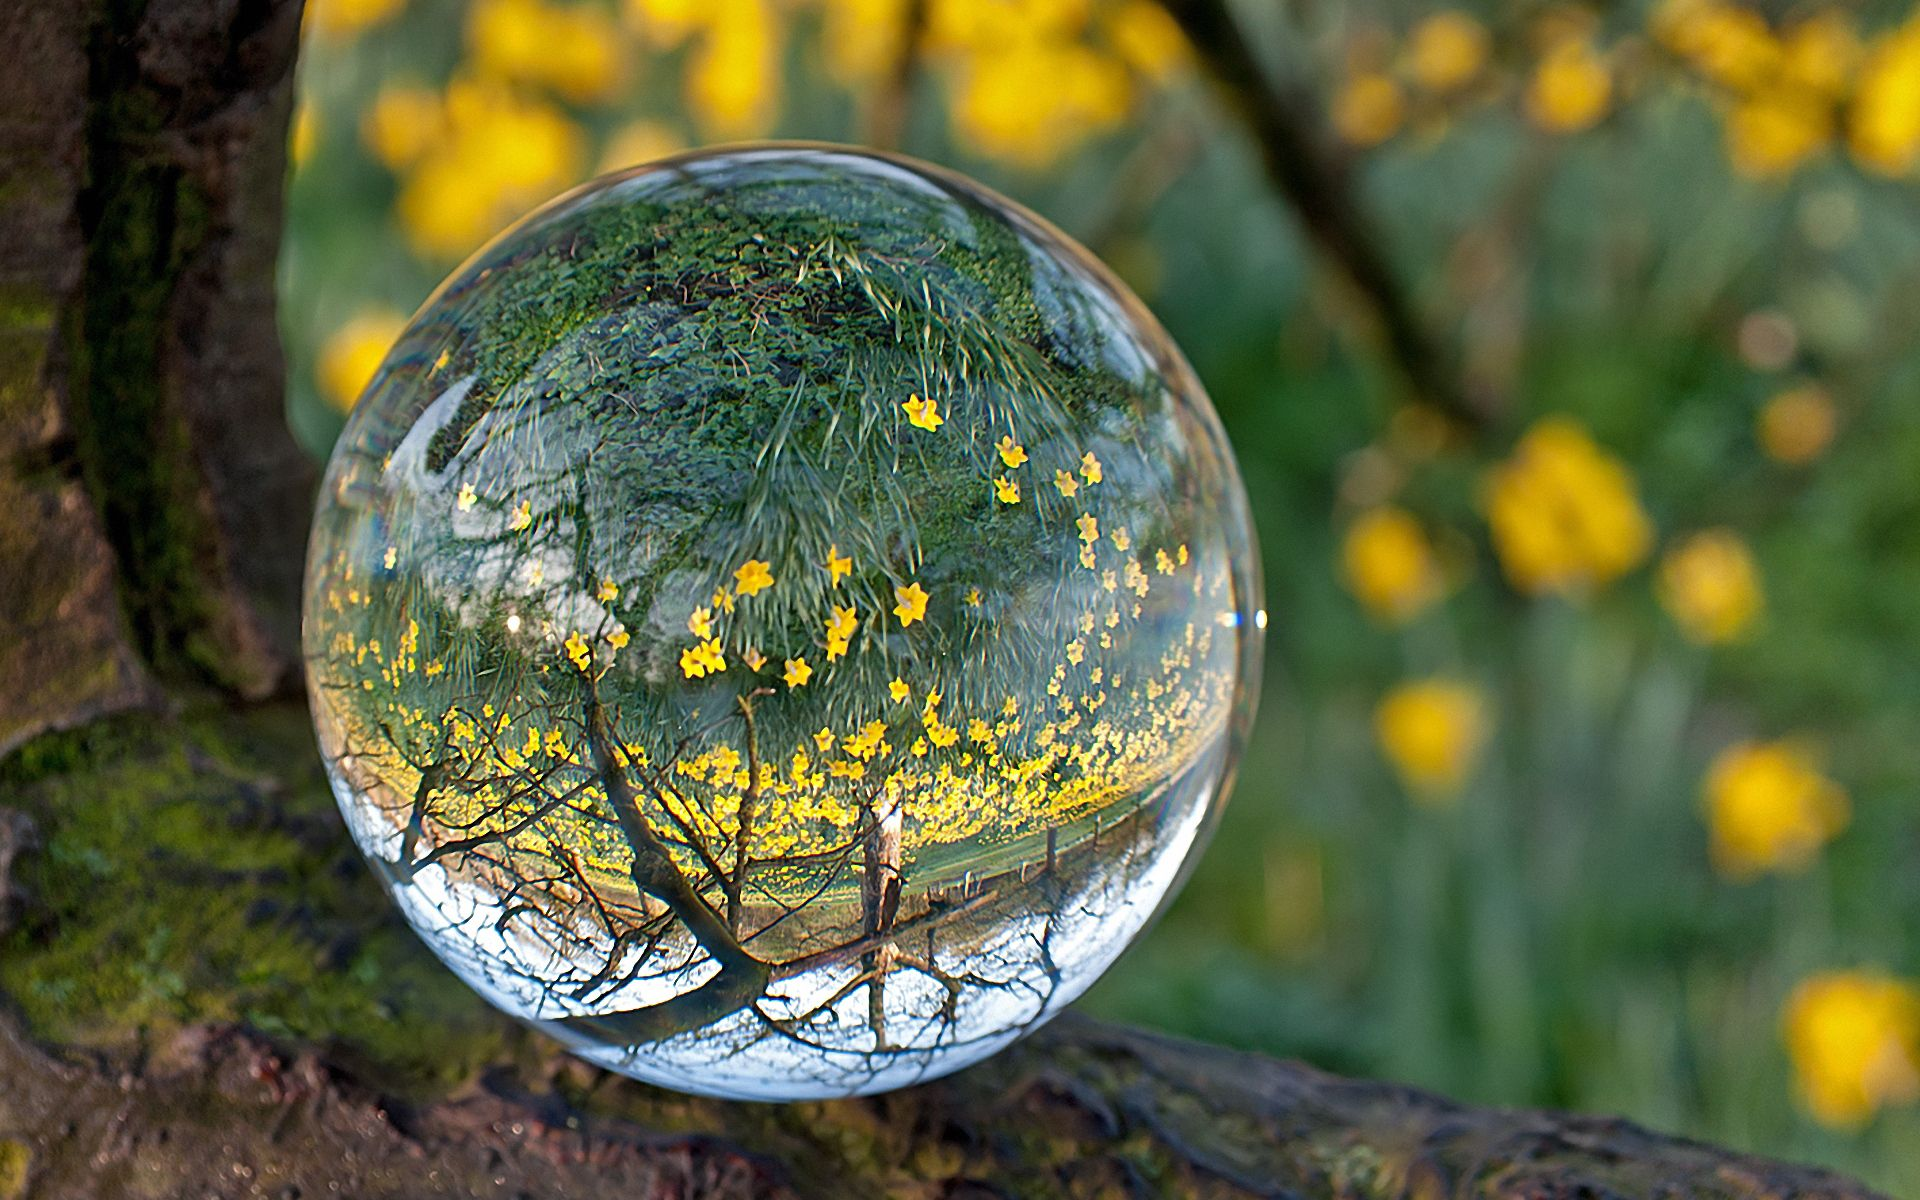 59211 download wallpaper Grass, Reflection, Transparent, Macro, Glass, Ball screensavers and pictures for free